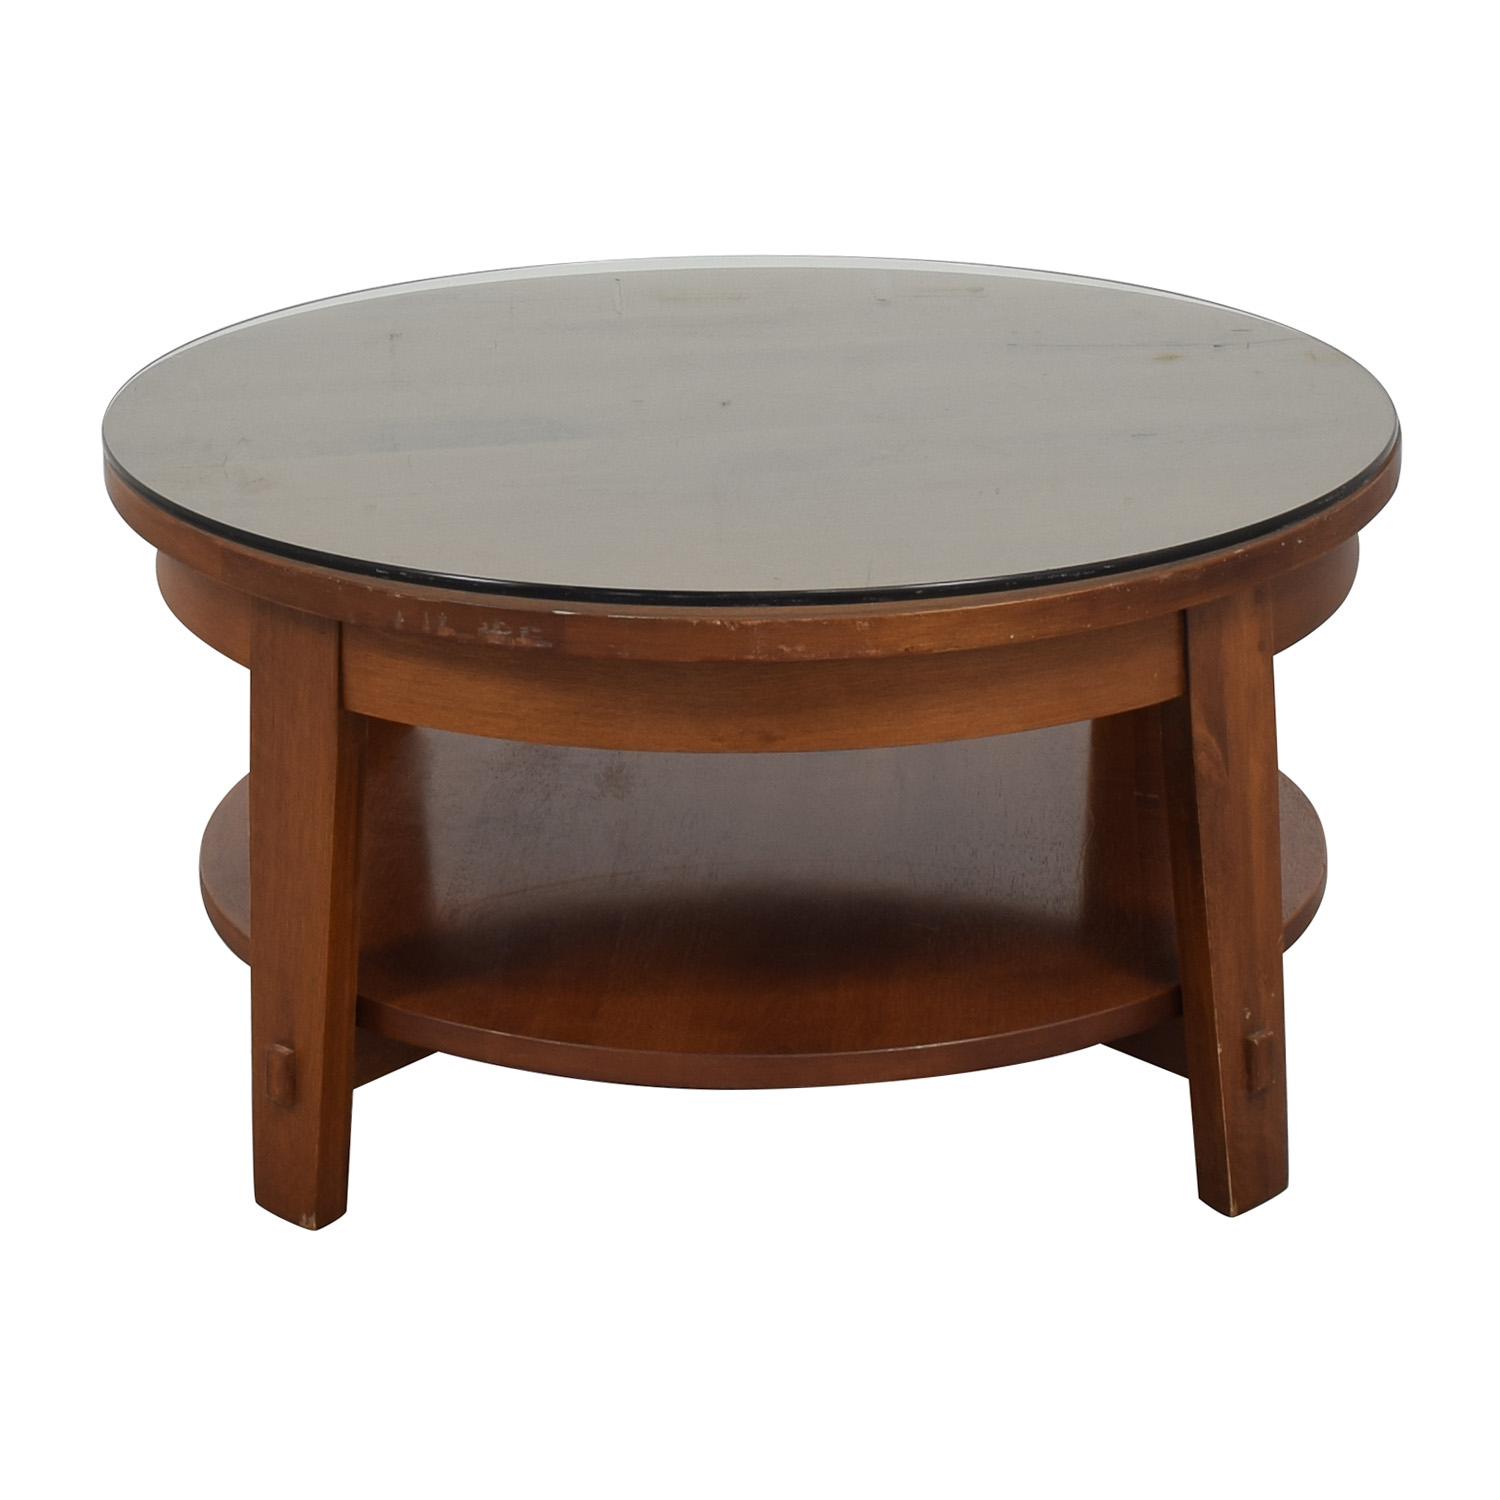 shop Crate & Barrel Round Coffee Table Crate & Barrel Tables